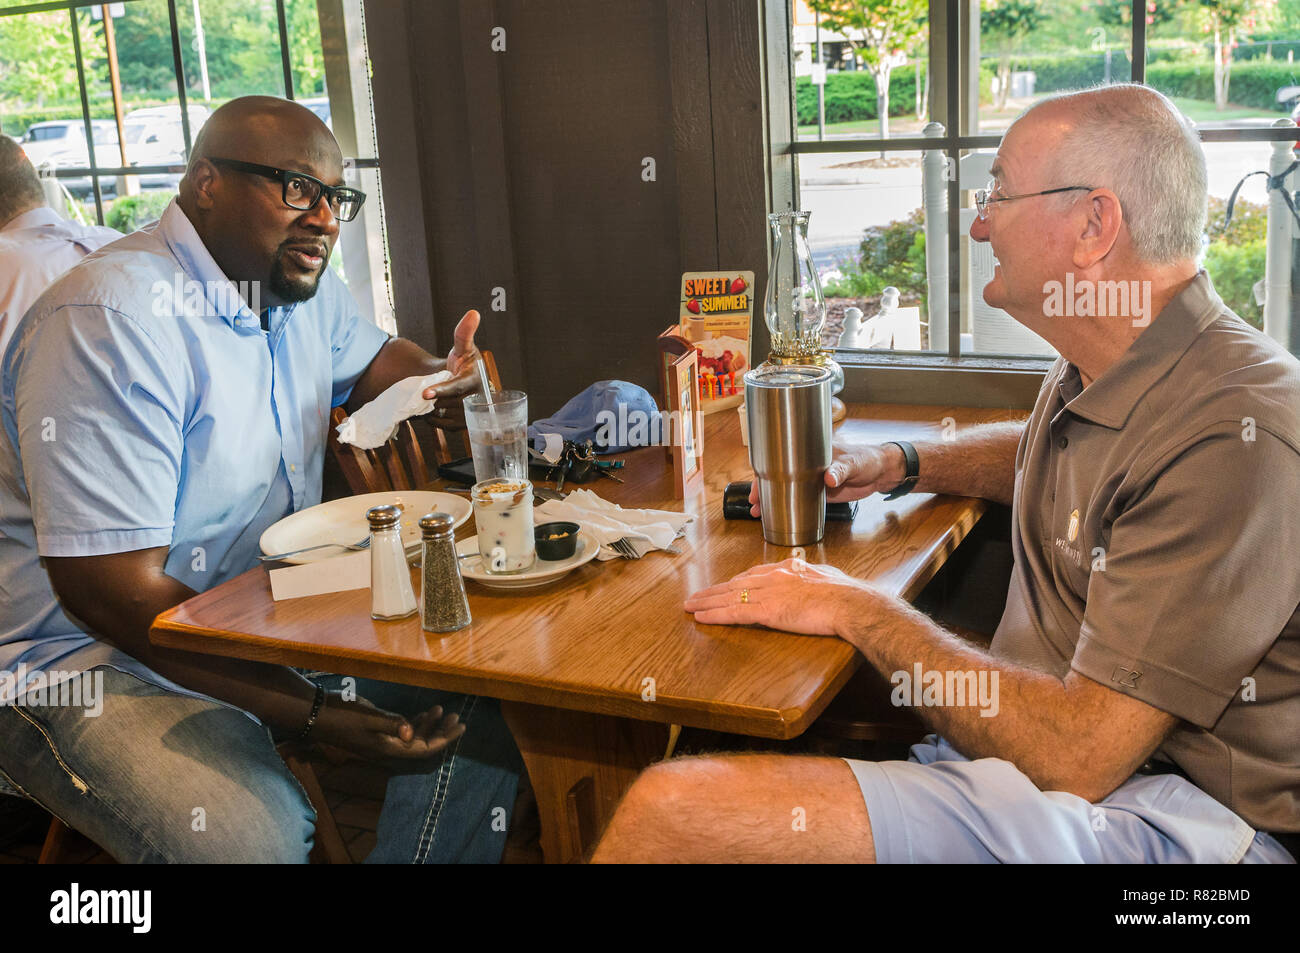 Birmingham pastors Alton Hardy and Bob Flayhart talk over breakfast in Birmingham, Alabama. The two are working to improve race relations in the city. - Stock Image